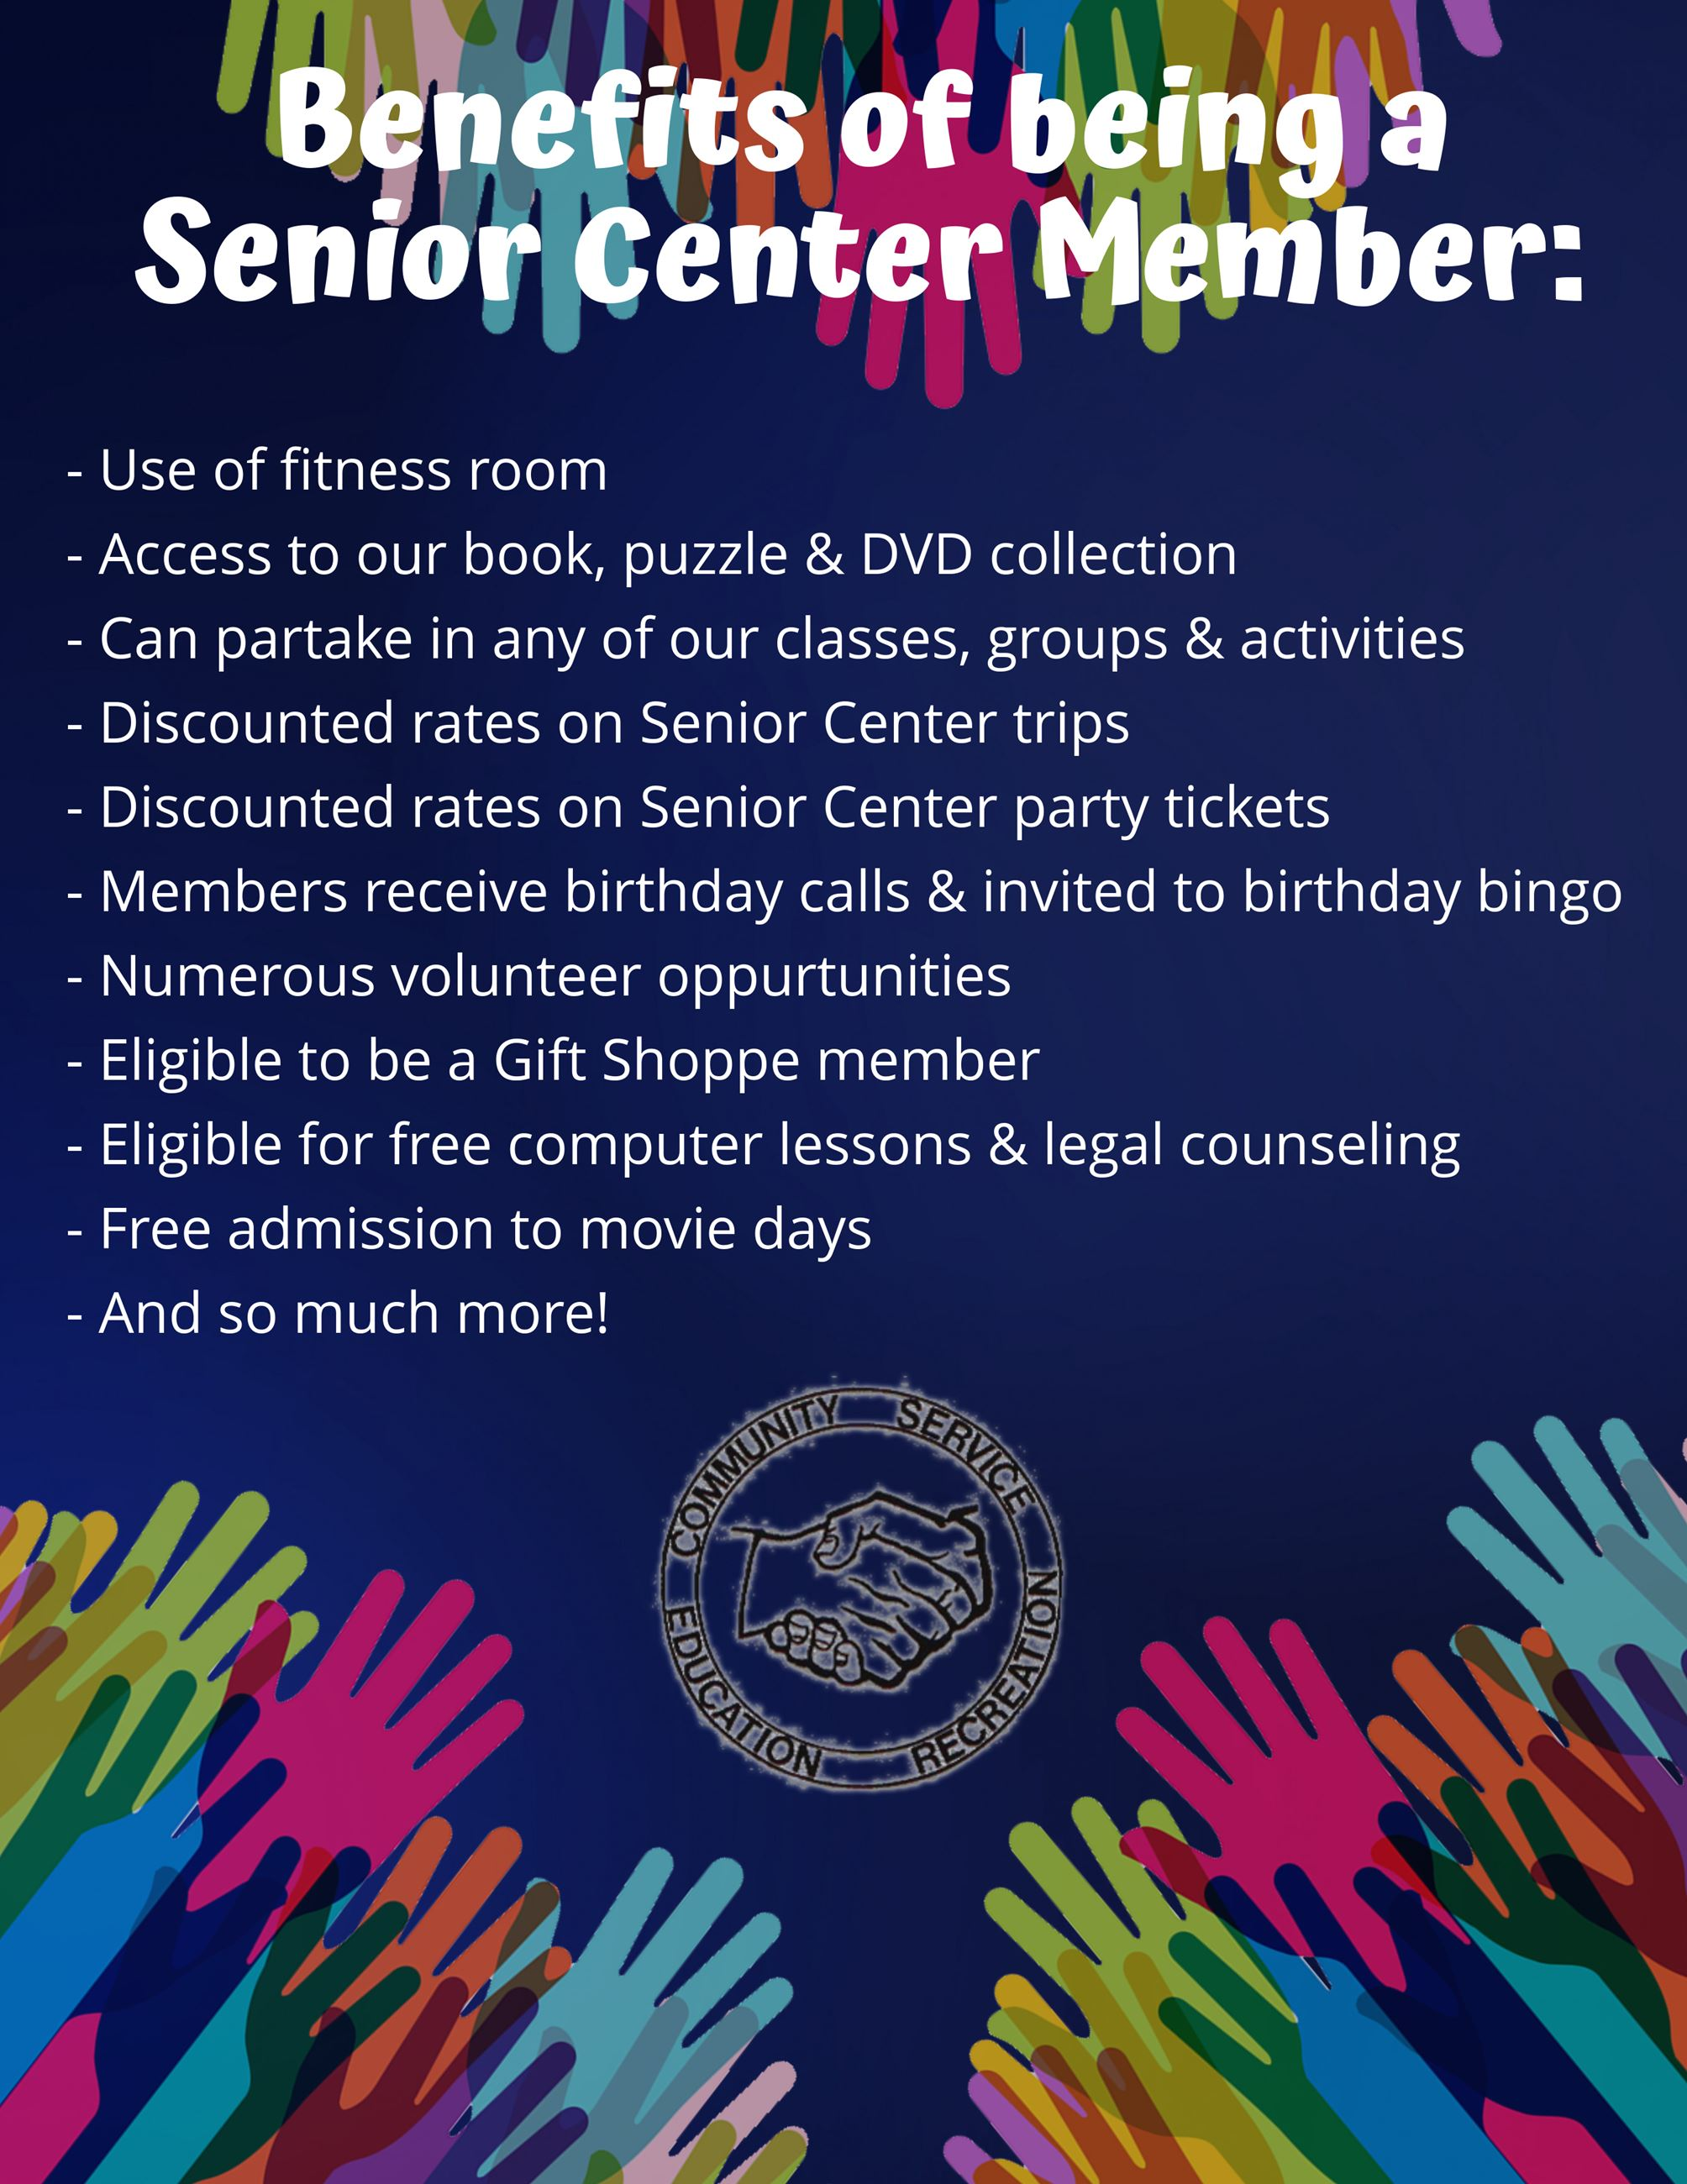 Benefits of being a Senior Center Member